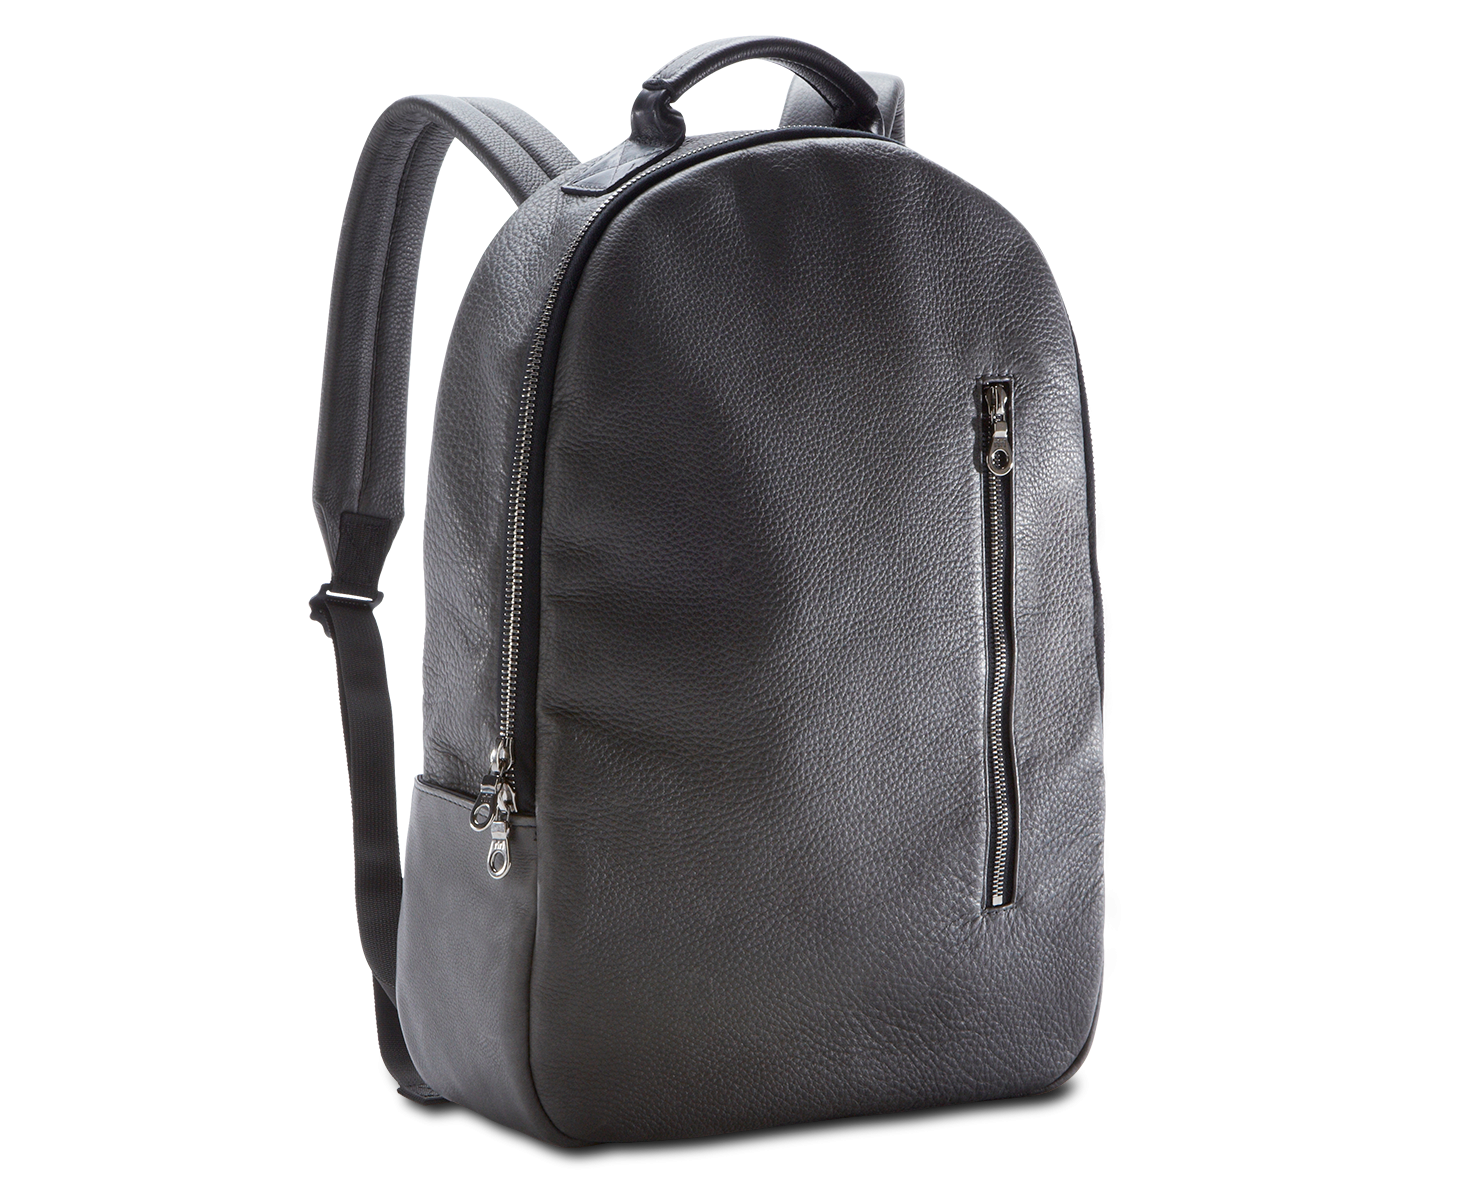 Best Backpacks For Work ZaOkbU3f